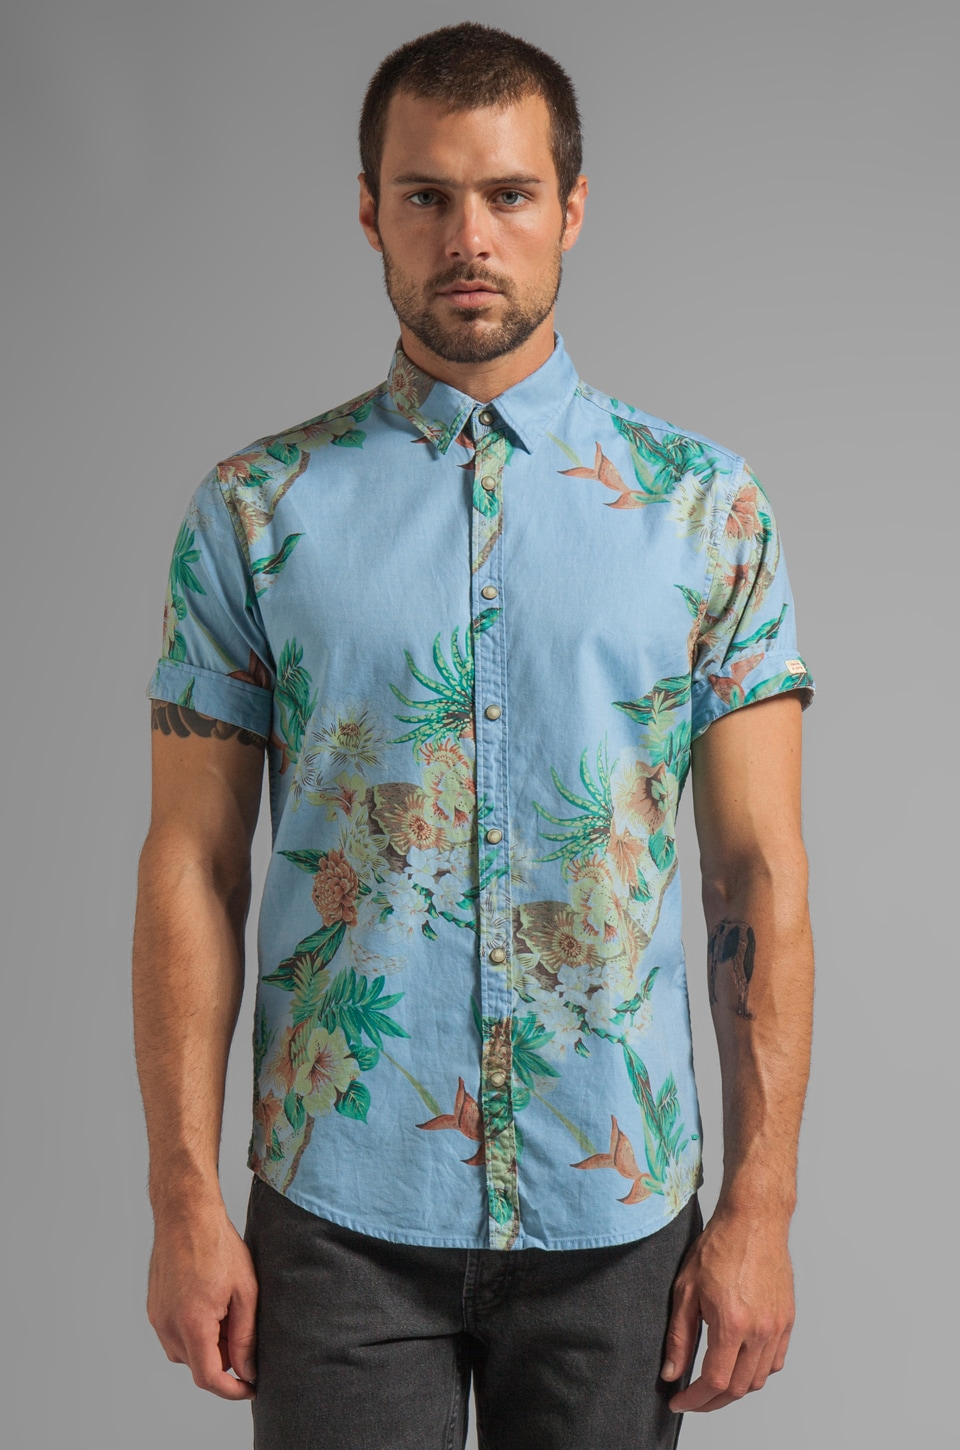 Scotch & Soda S/S Hawaiian Woven Shirt in Blue